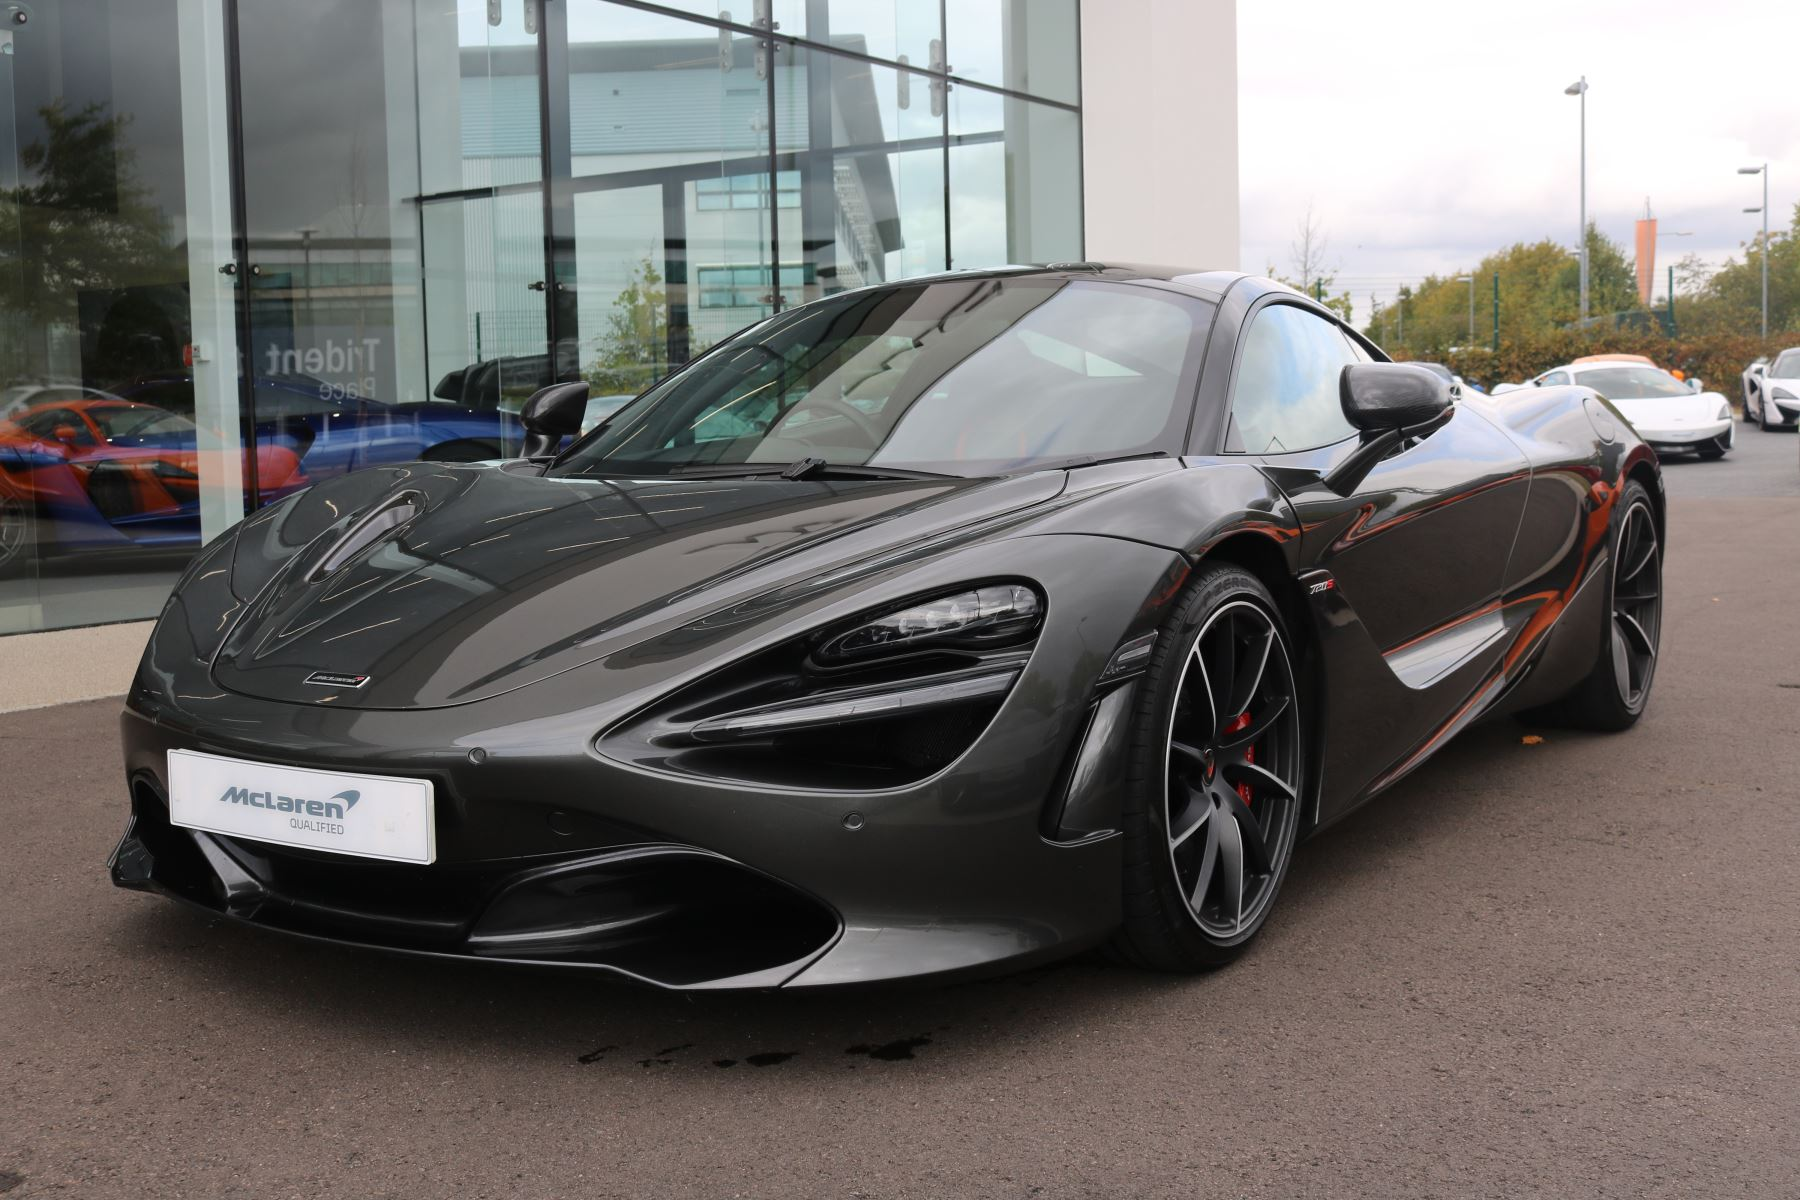 McLaren 720S Performance 4.0 Semi-Automatic 2 door Coupe (2018) image